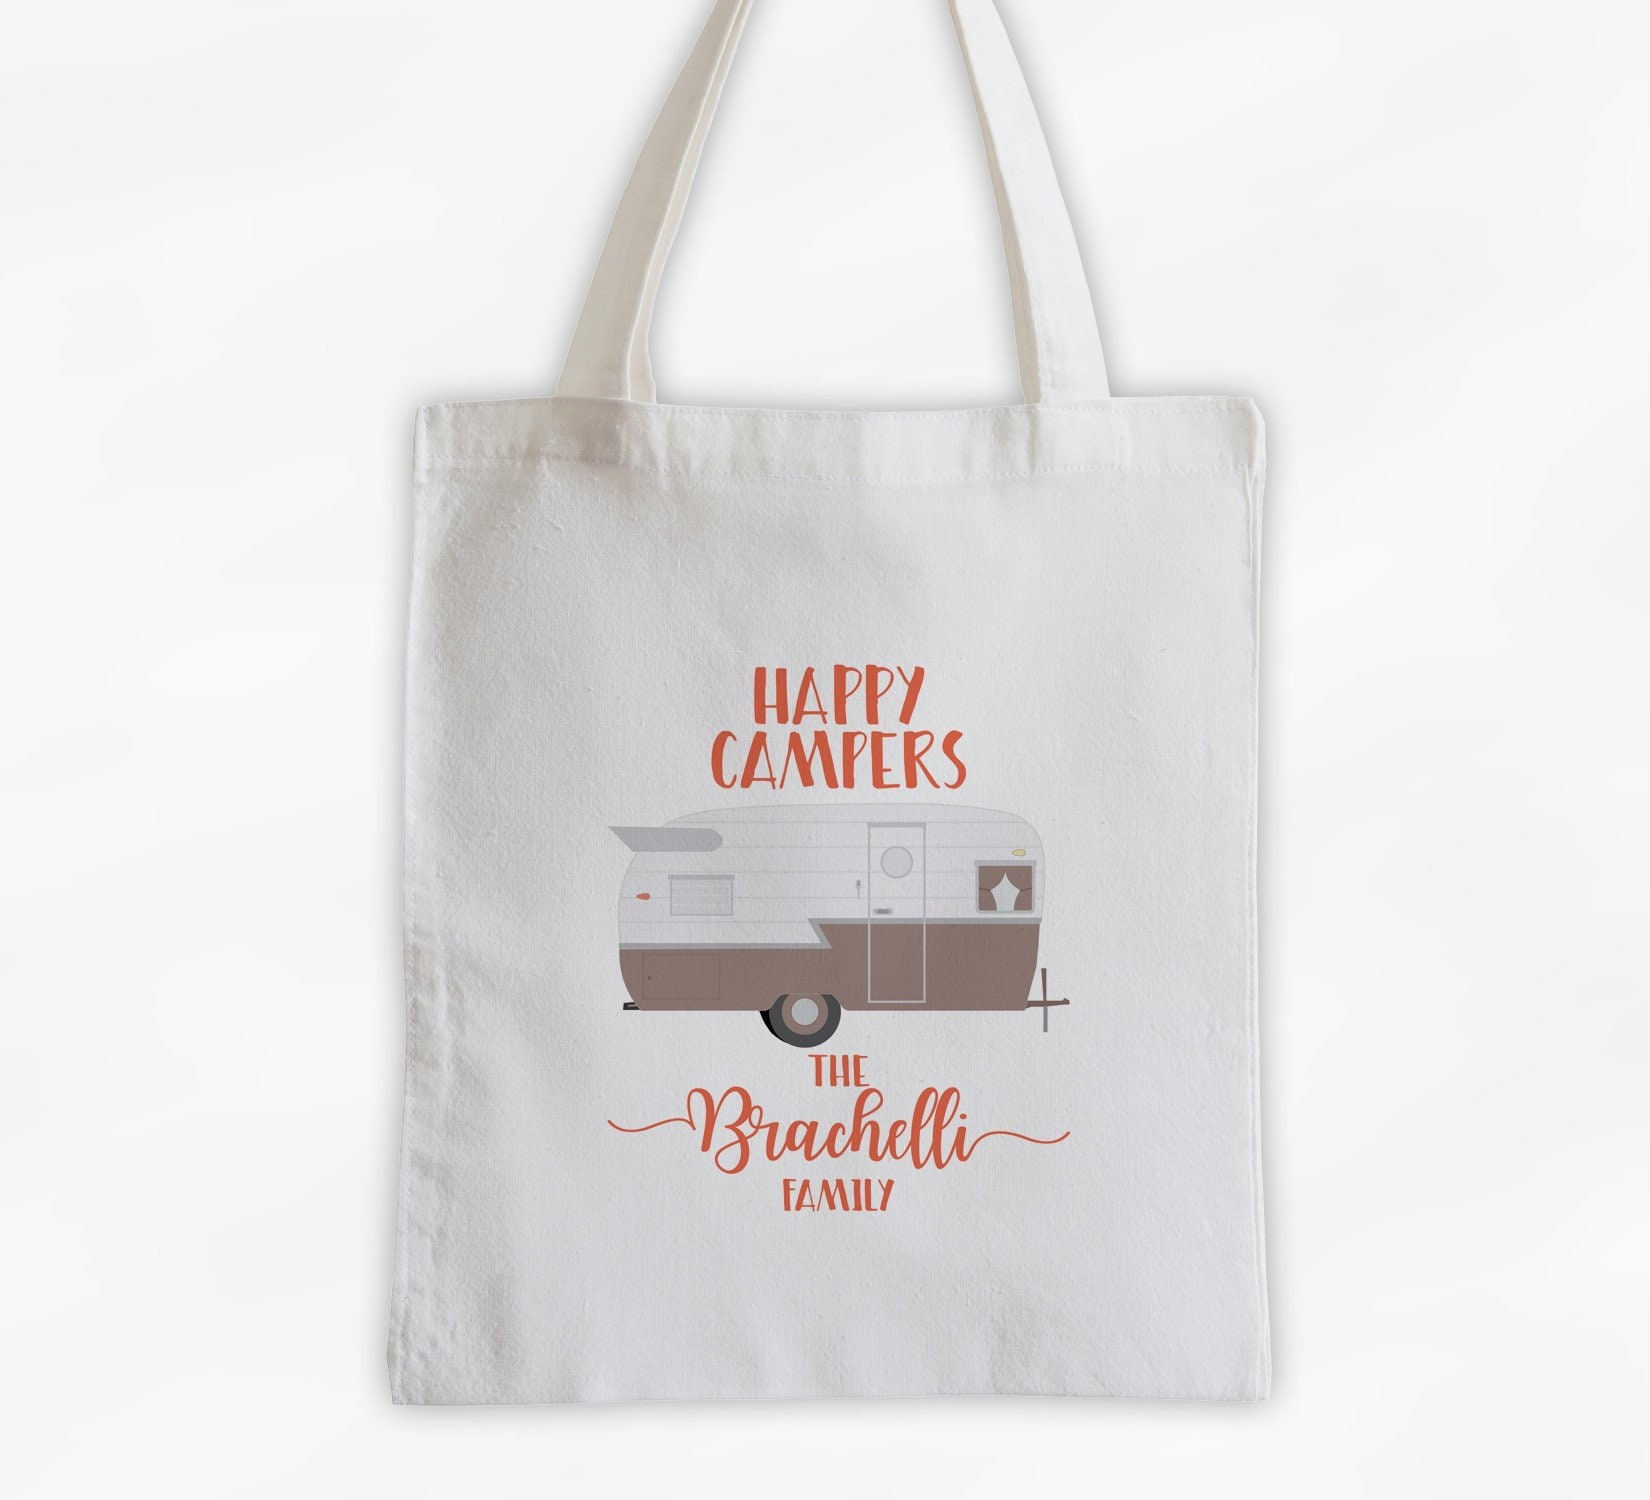 4ac6fc14e876 Happy Camper Personalized Canvas Tote Bag in Beige and Coral